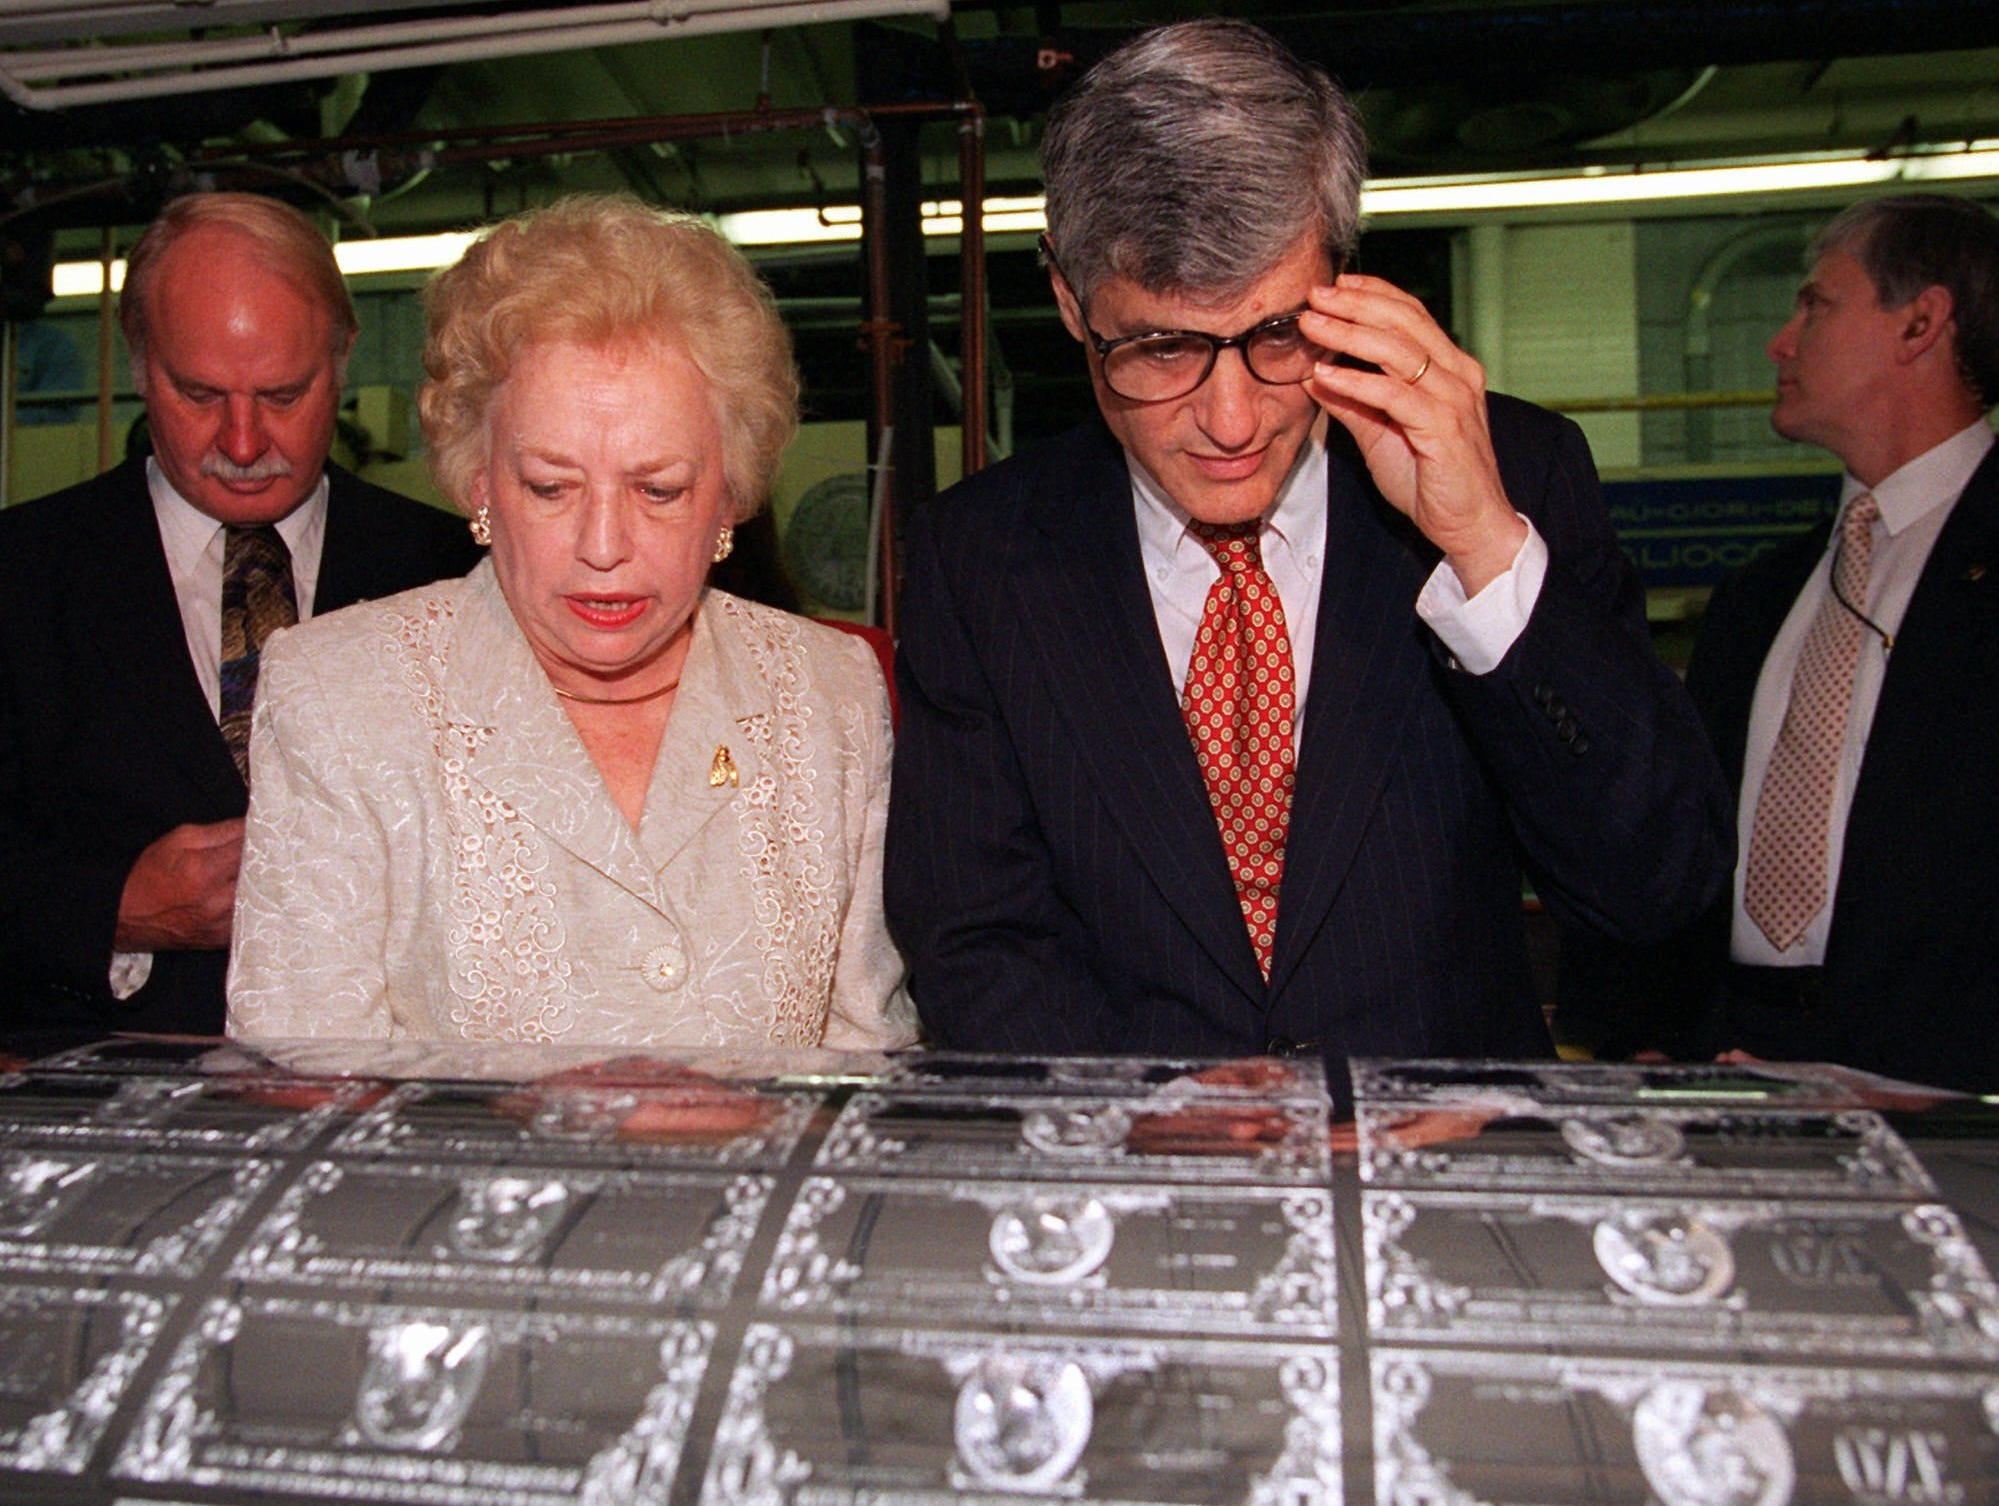 Treasury Secretary Robert Rubin and Treasurer of the U.S. Mary Ellen Withrow look over plates for printing dollar bills featuring their signatures, Friday, May 5, 1995, at the Bureau of Printing and Engraving in Washington. The officials were on hand to watch the first printing of bills with their signatures. (AP Photo/Dennis Cook)